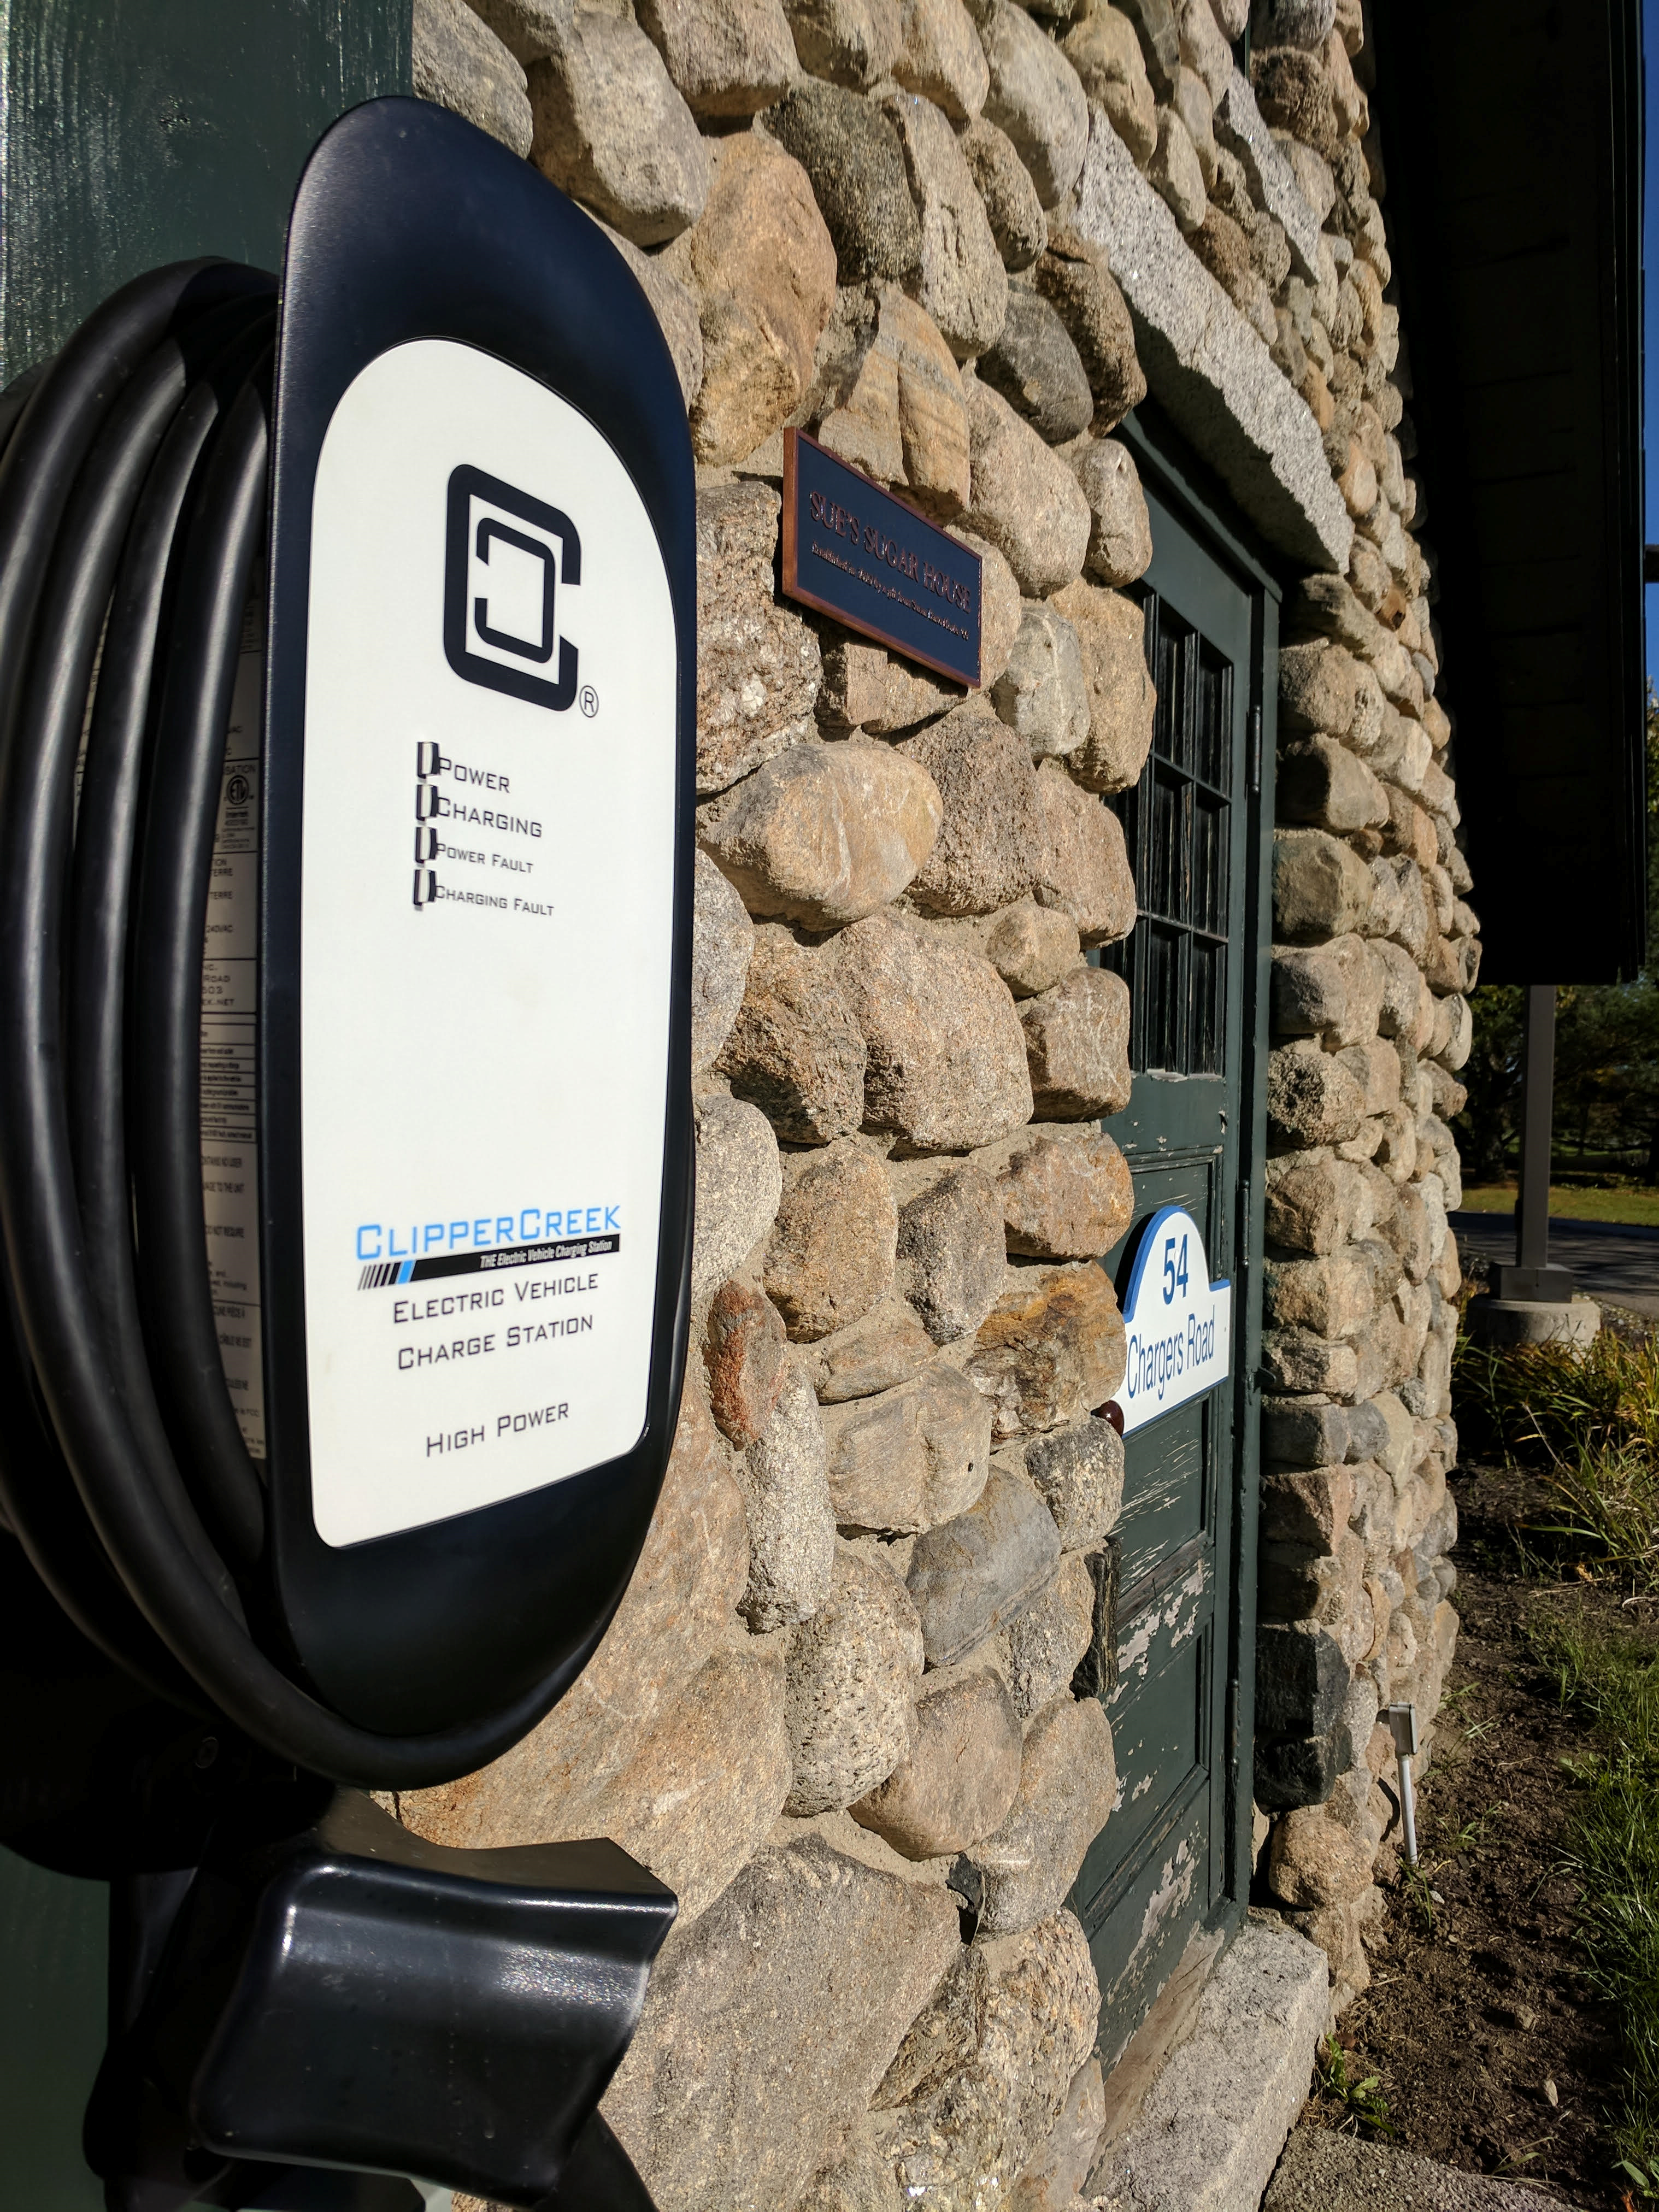 Colby Sawyer College Installs Electric Vehicle Charging Station